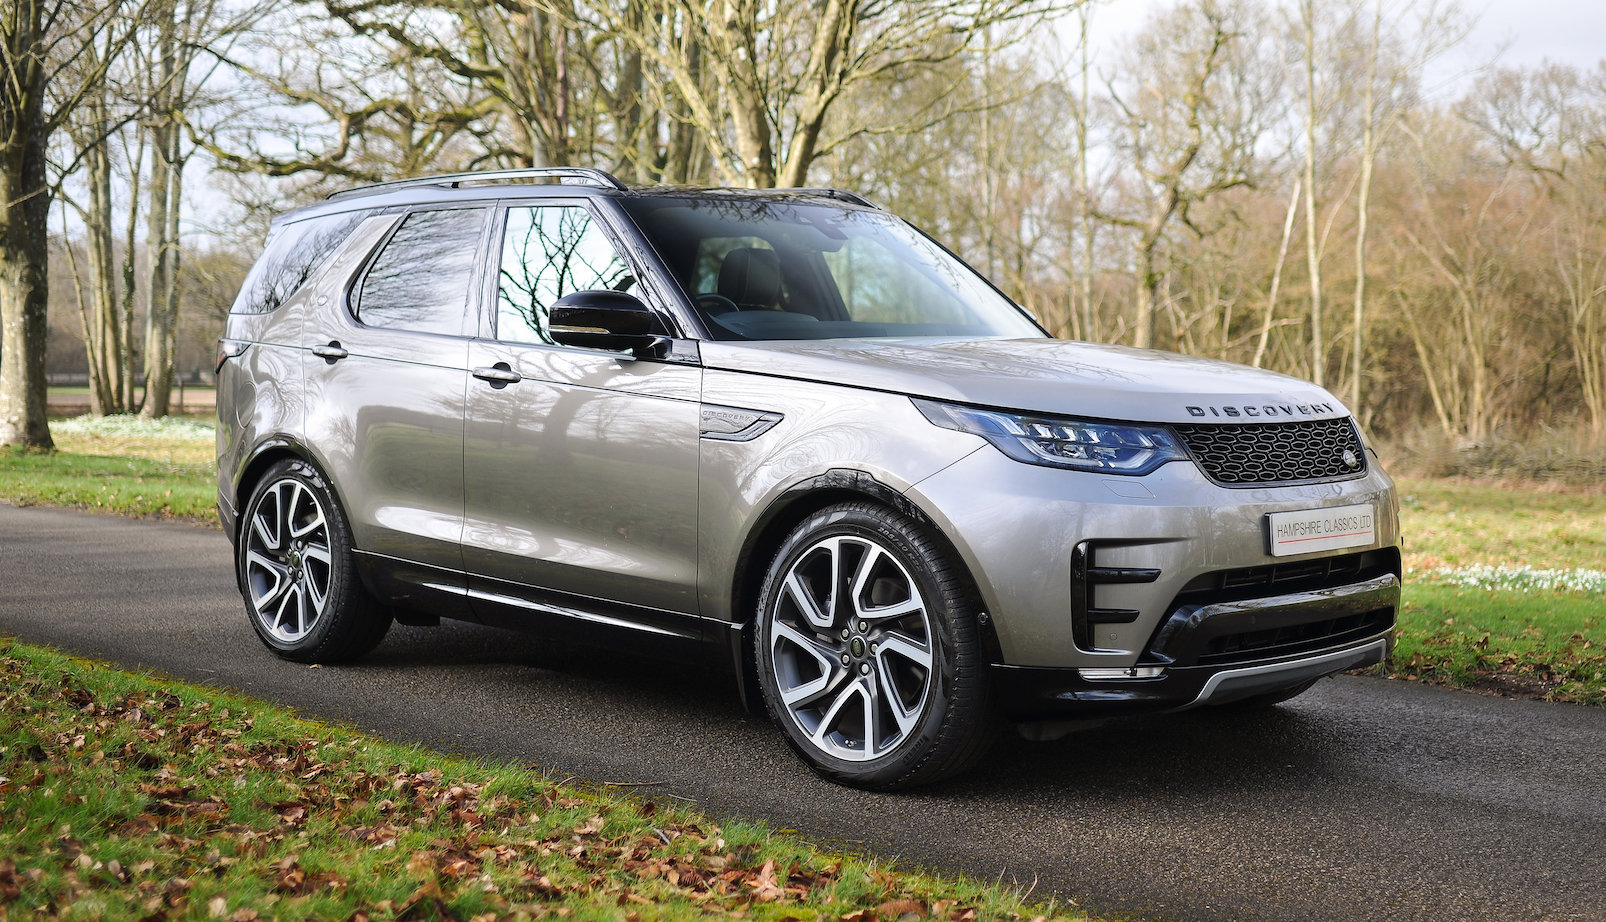 2018 Land Rover Discovery HSE SDV6 Auto SOLD (picture 1 of 6)